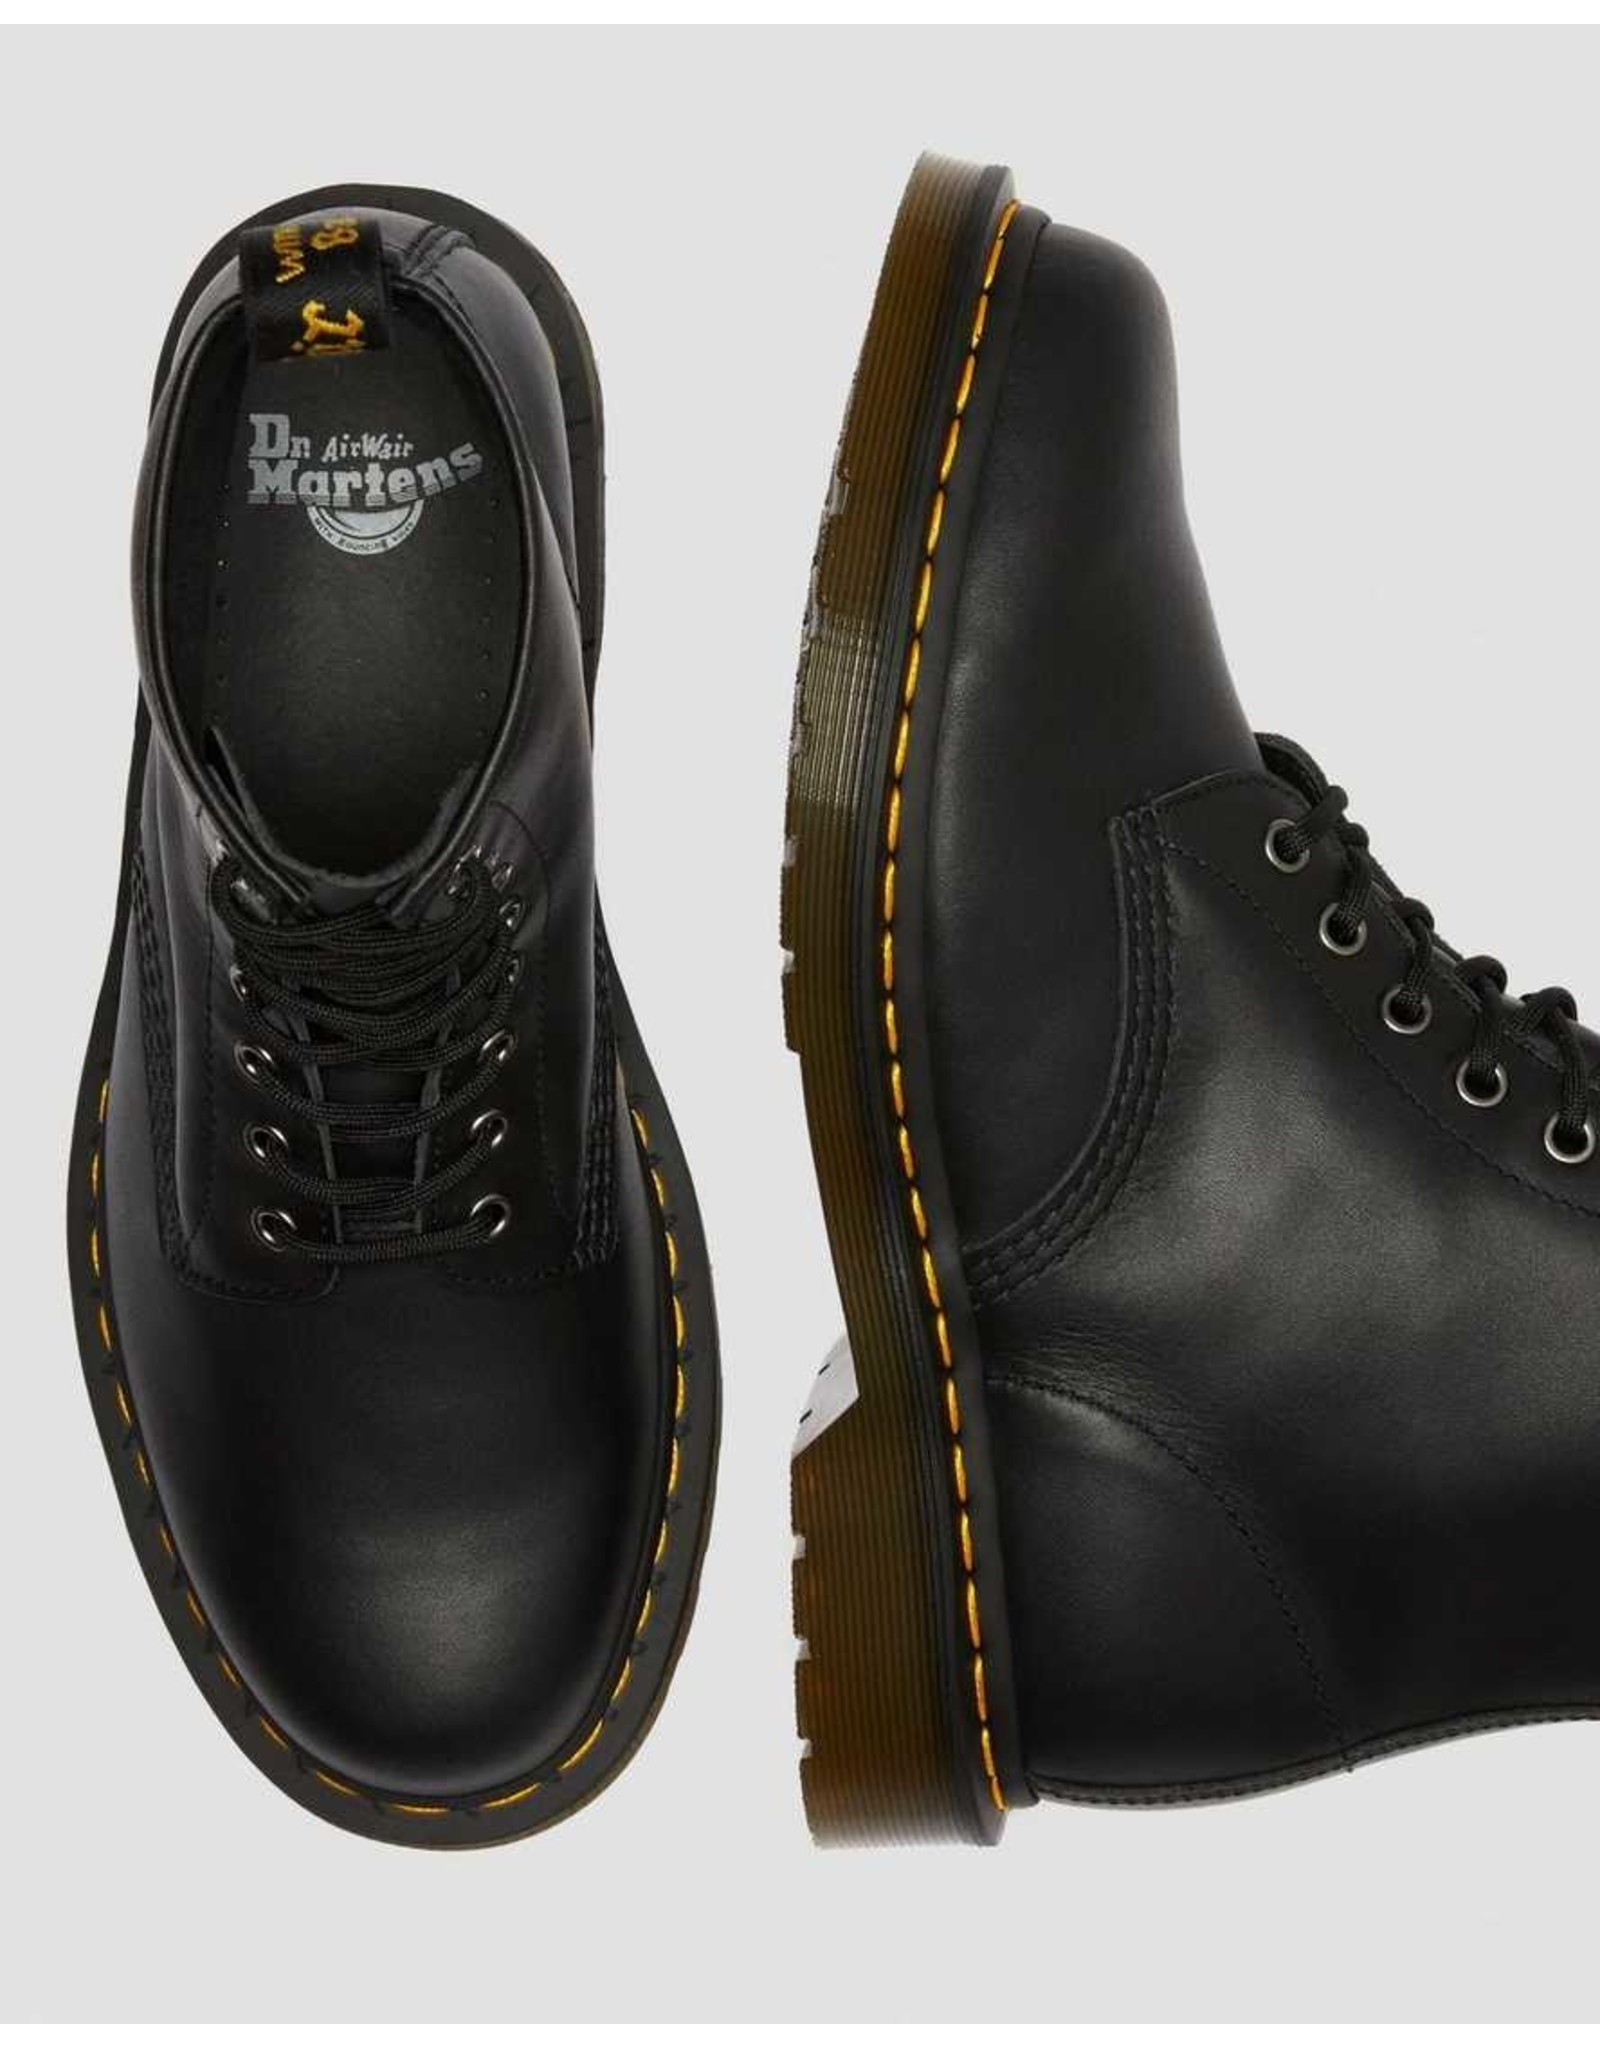 DR. MARTENS DR. MARTENS BLACK NAPPA LEATHER LACE UP BOOTS